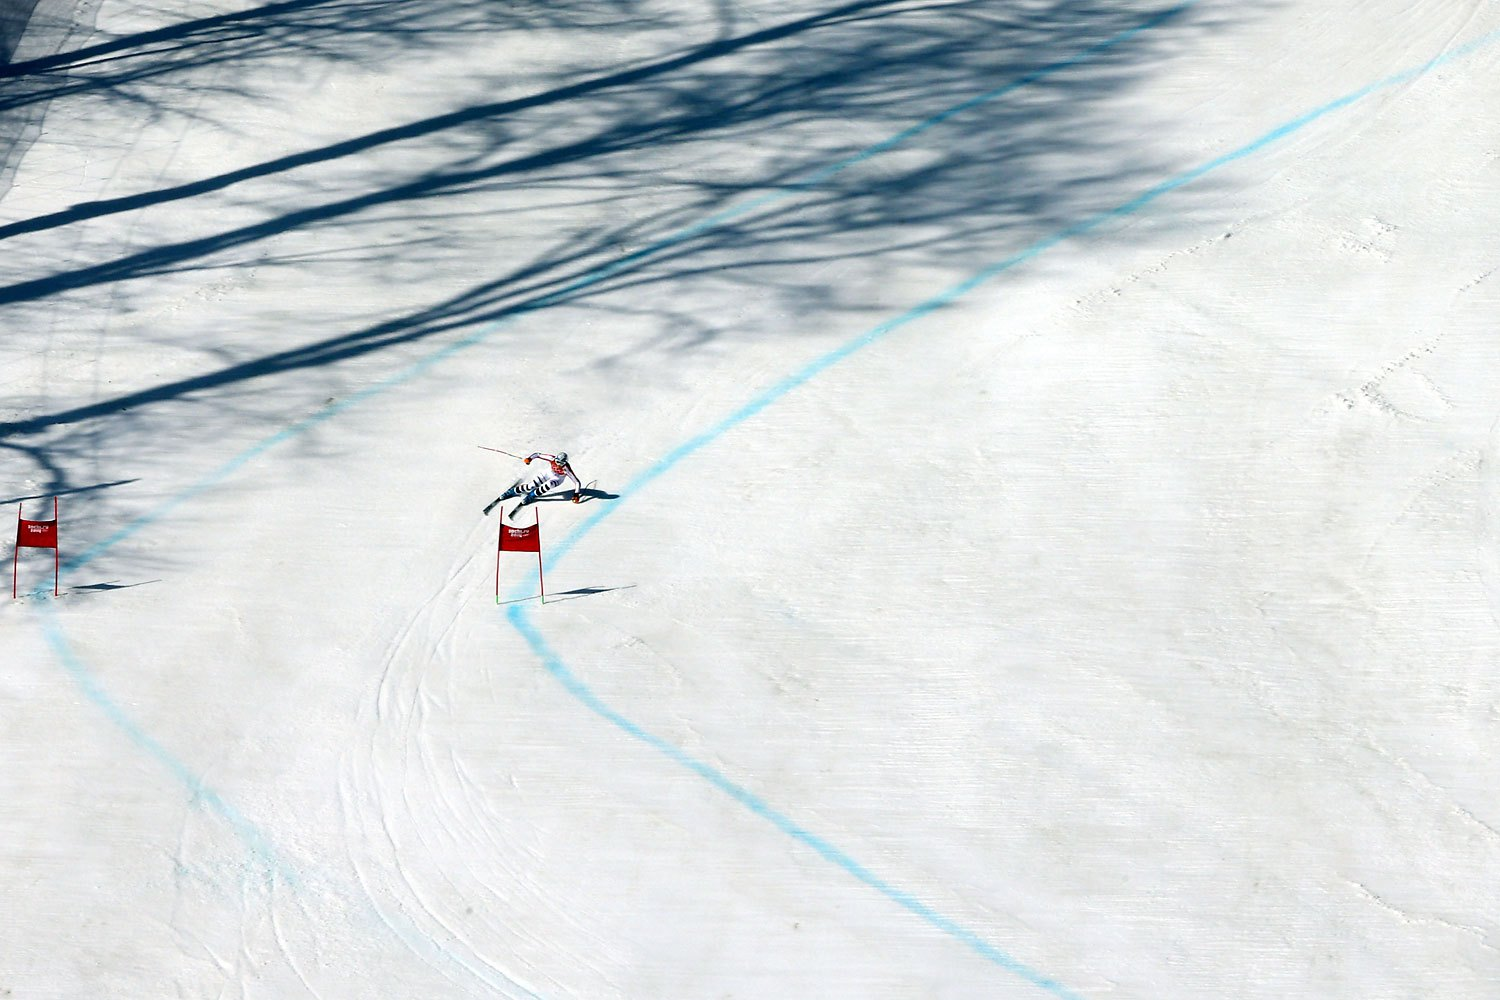 Maria Hoefl-Riesch of Germany on her silver medal winning run in the Alpine Skiing Women's Super-G.